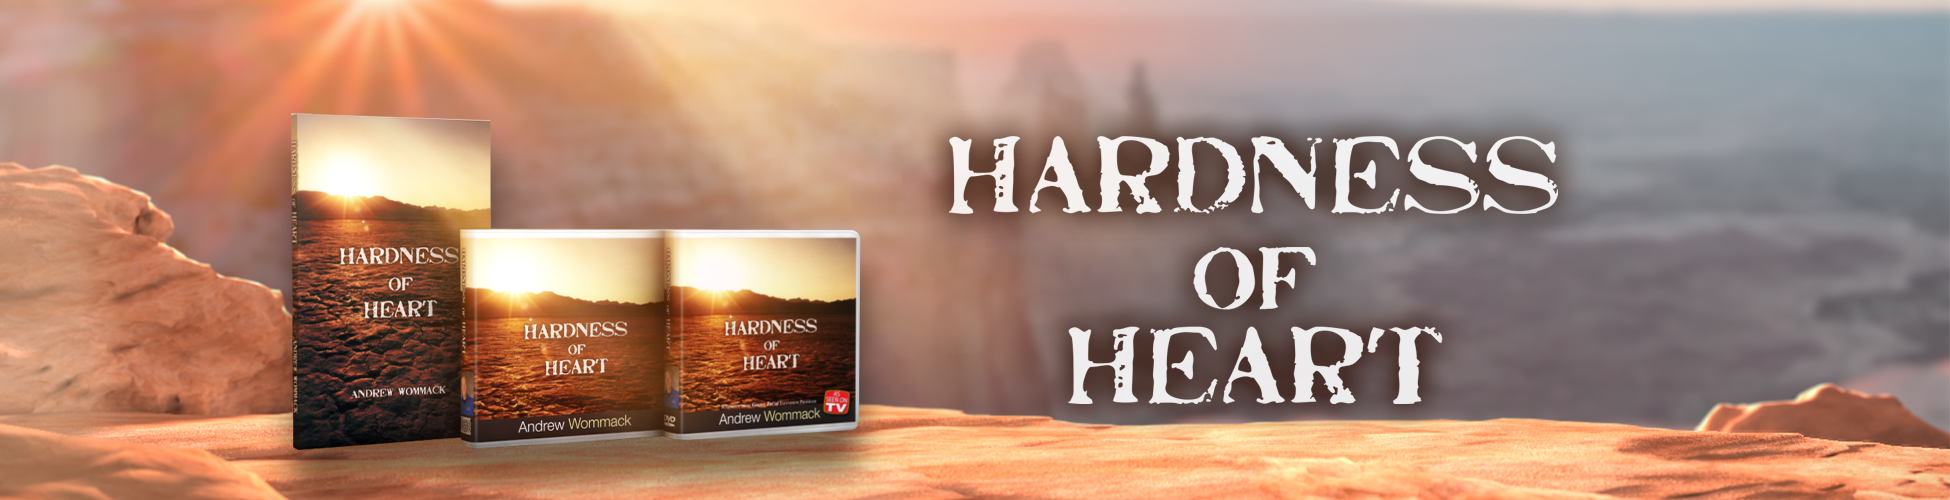 Hardness-of-Heart-Landing-Page-Banner-1